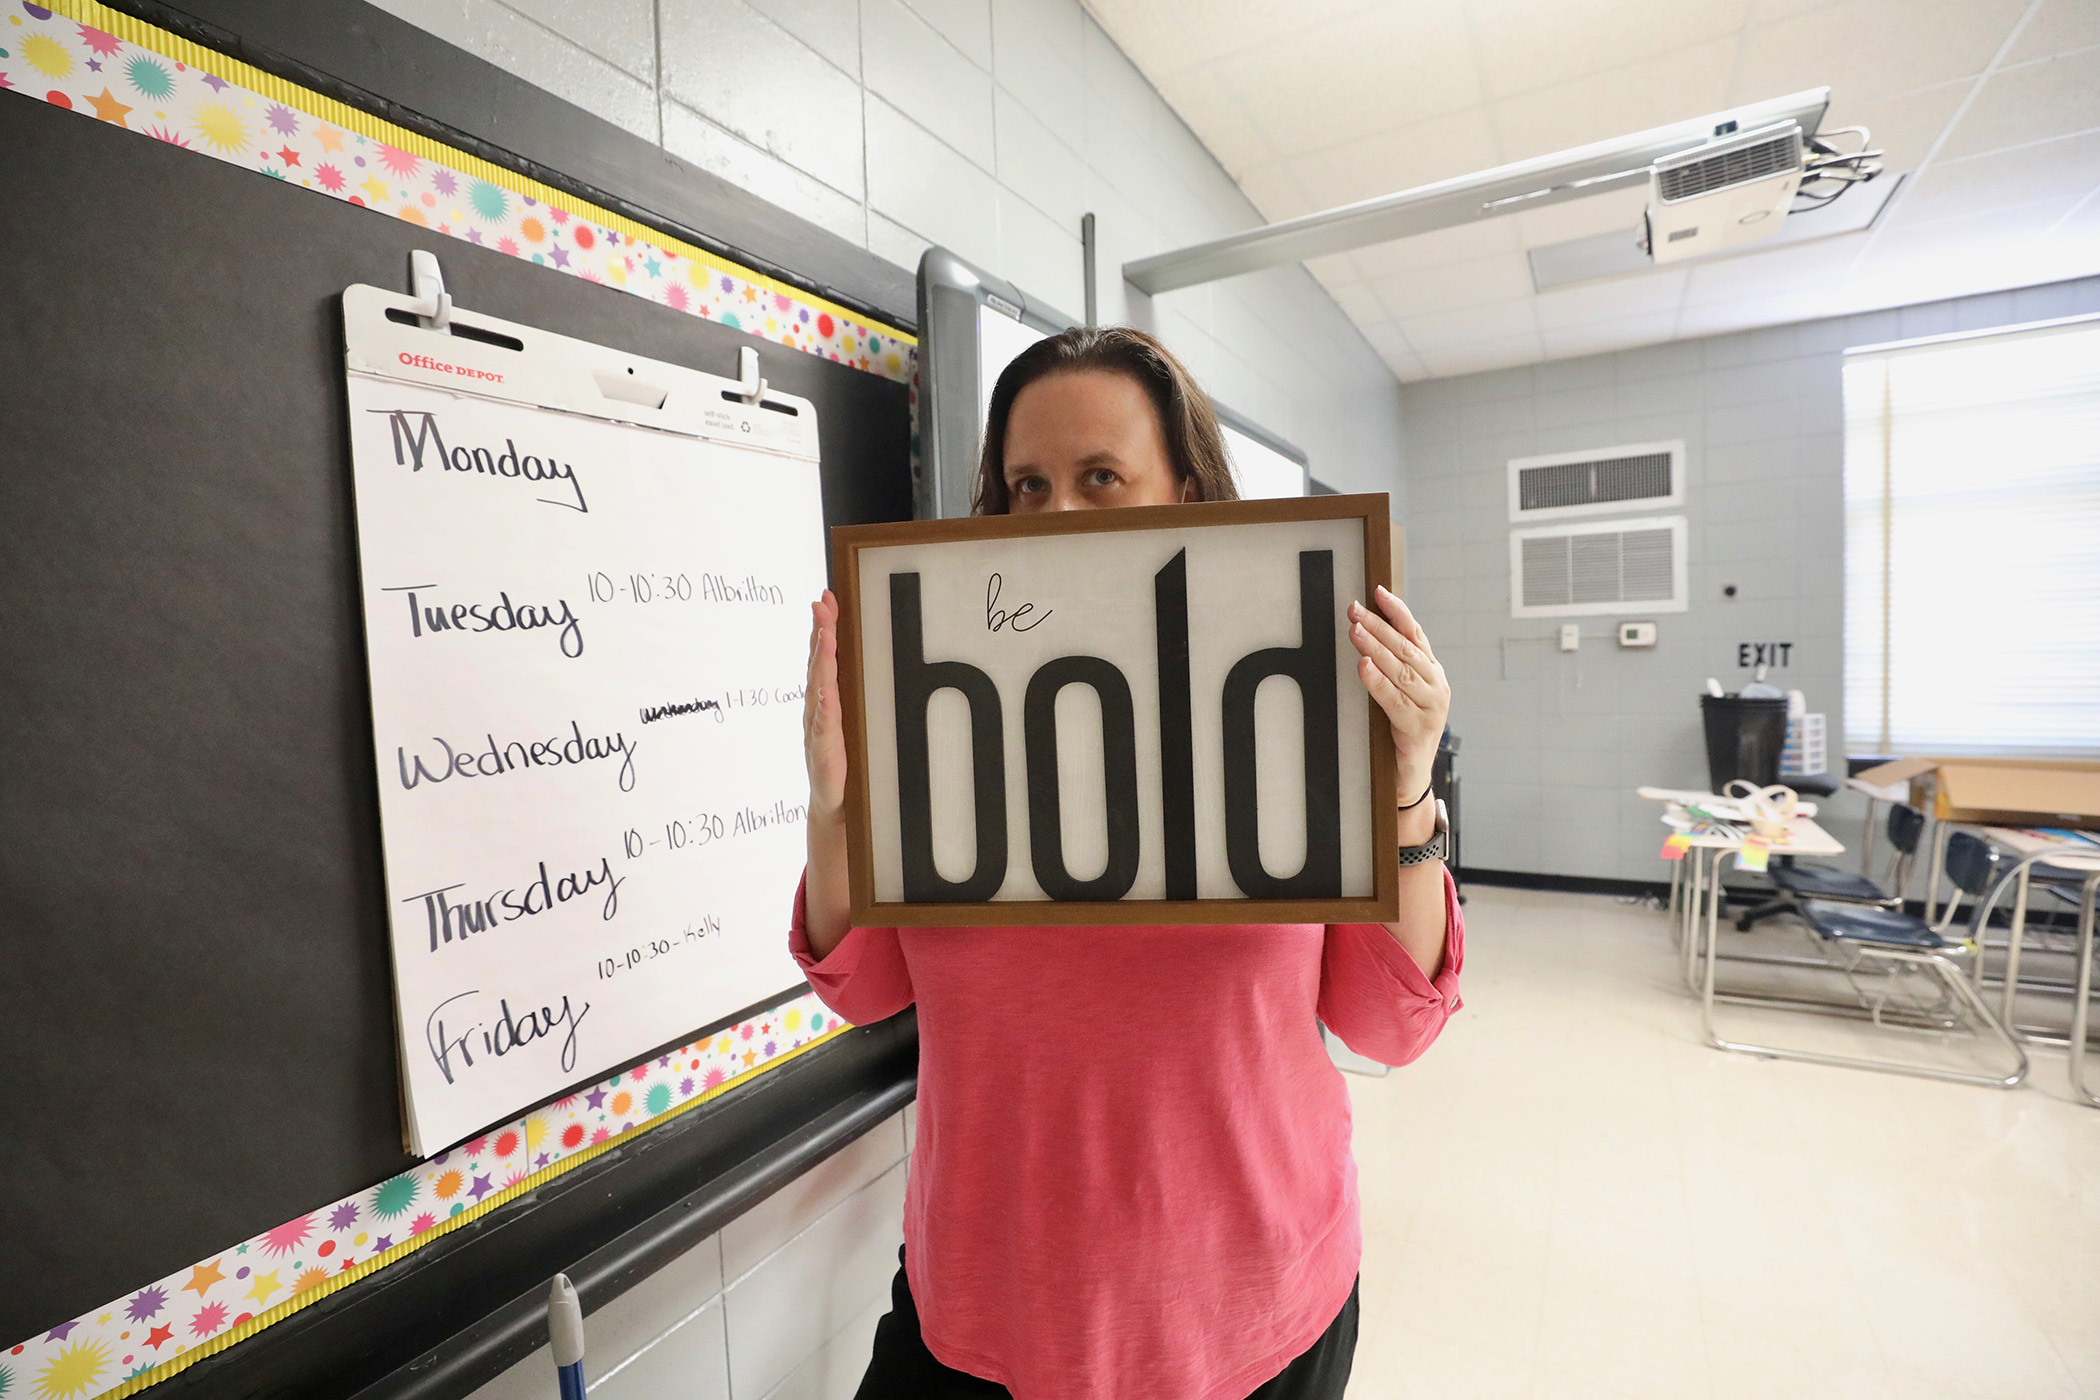 This is a photo of a teacher holding a sign.